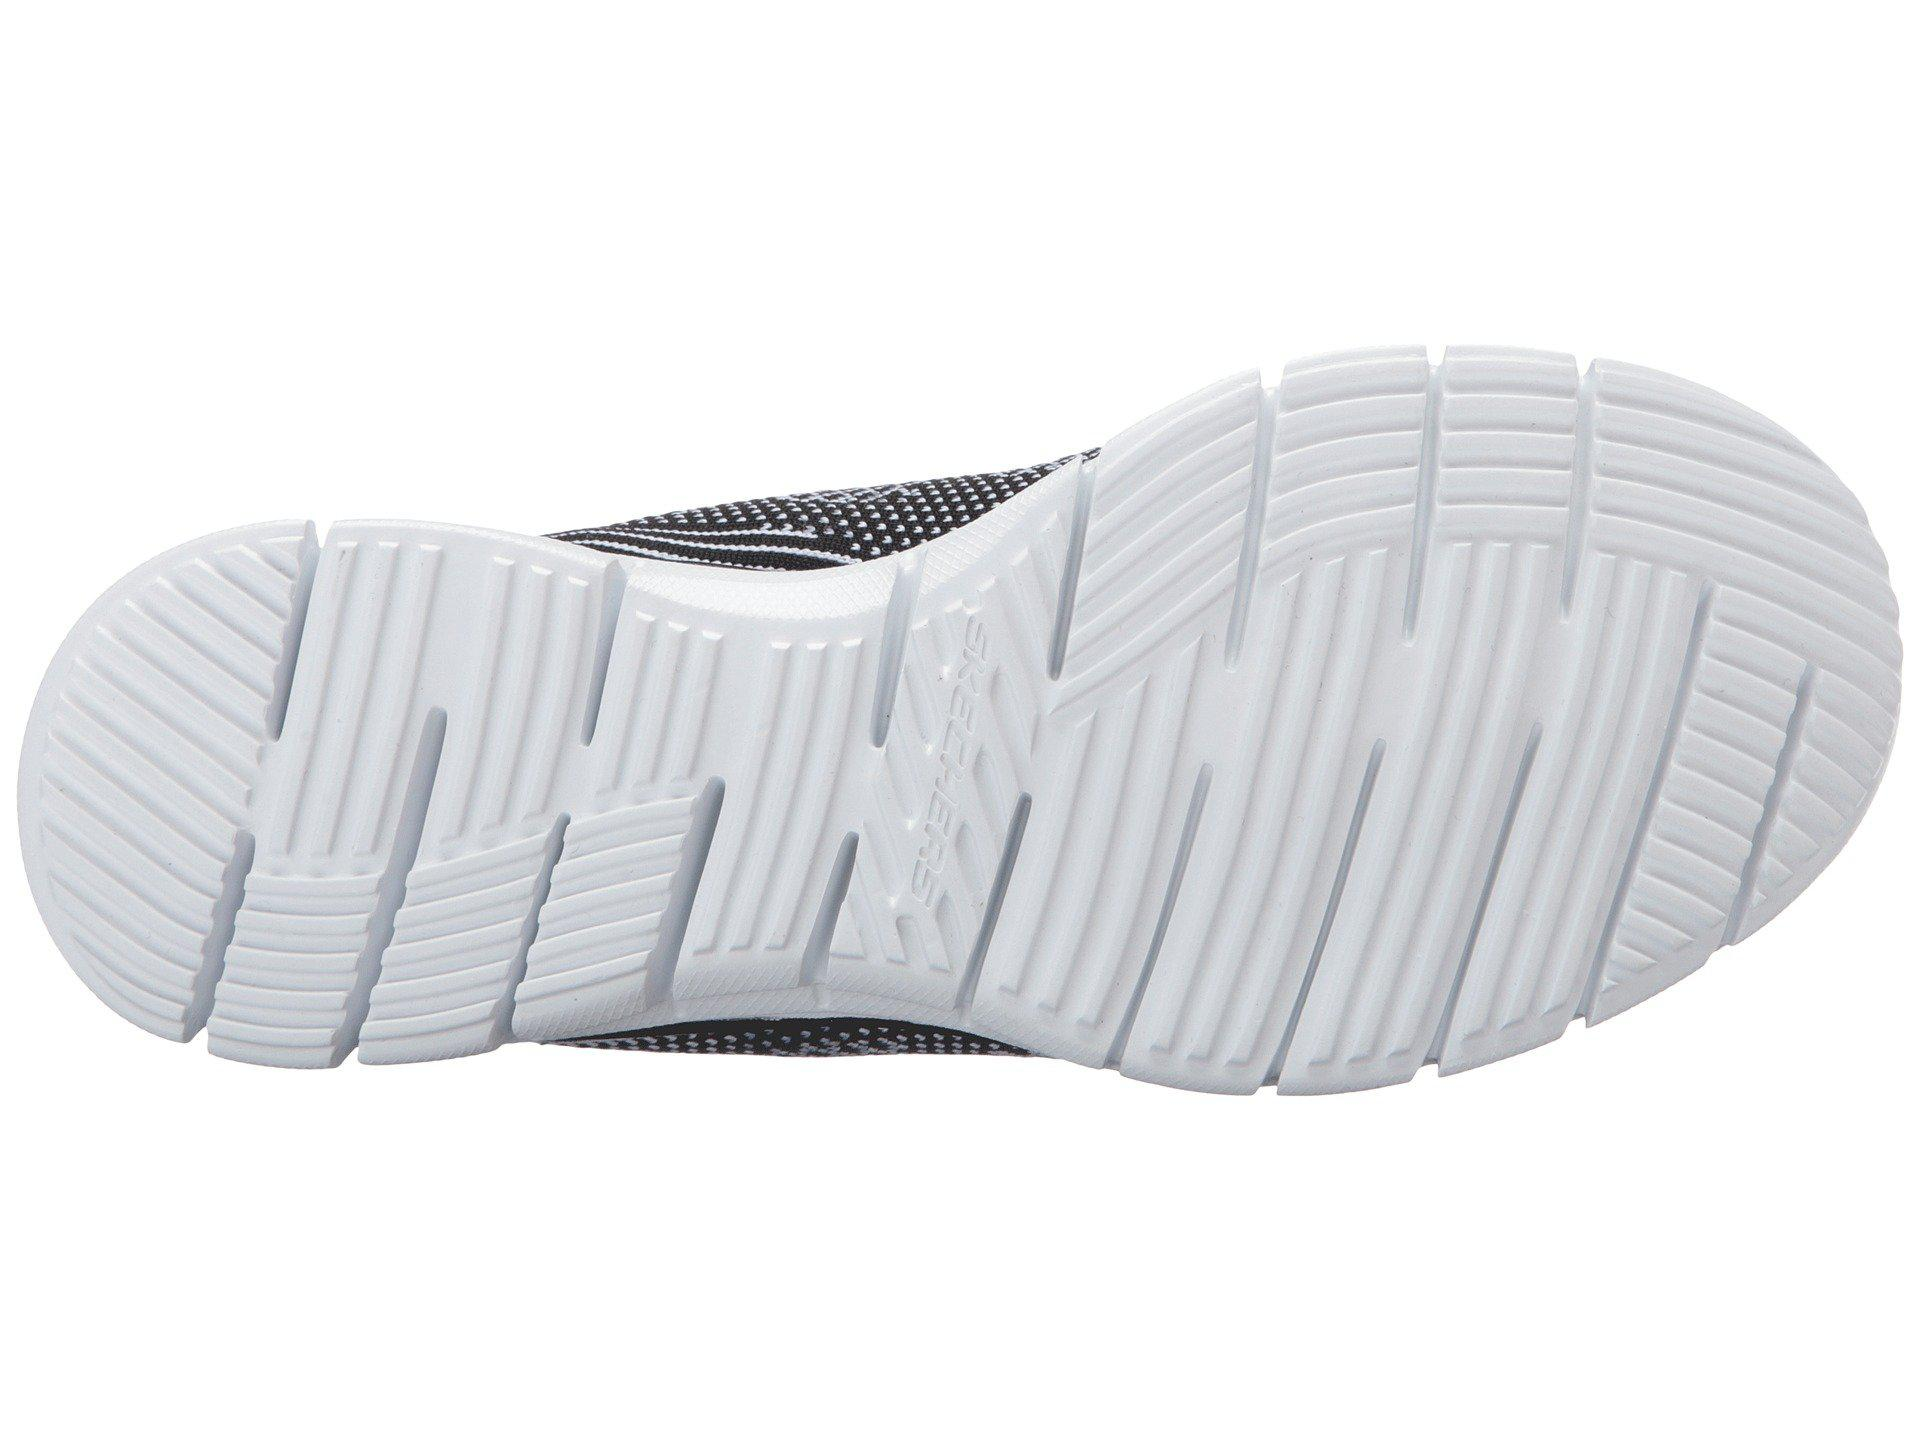 e97faee66f25 Lyst - Skechers Glider - Forever Young in Black for Men